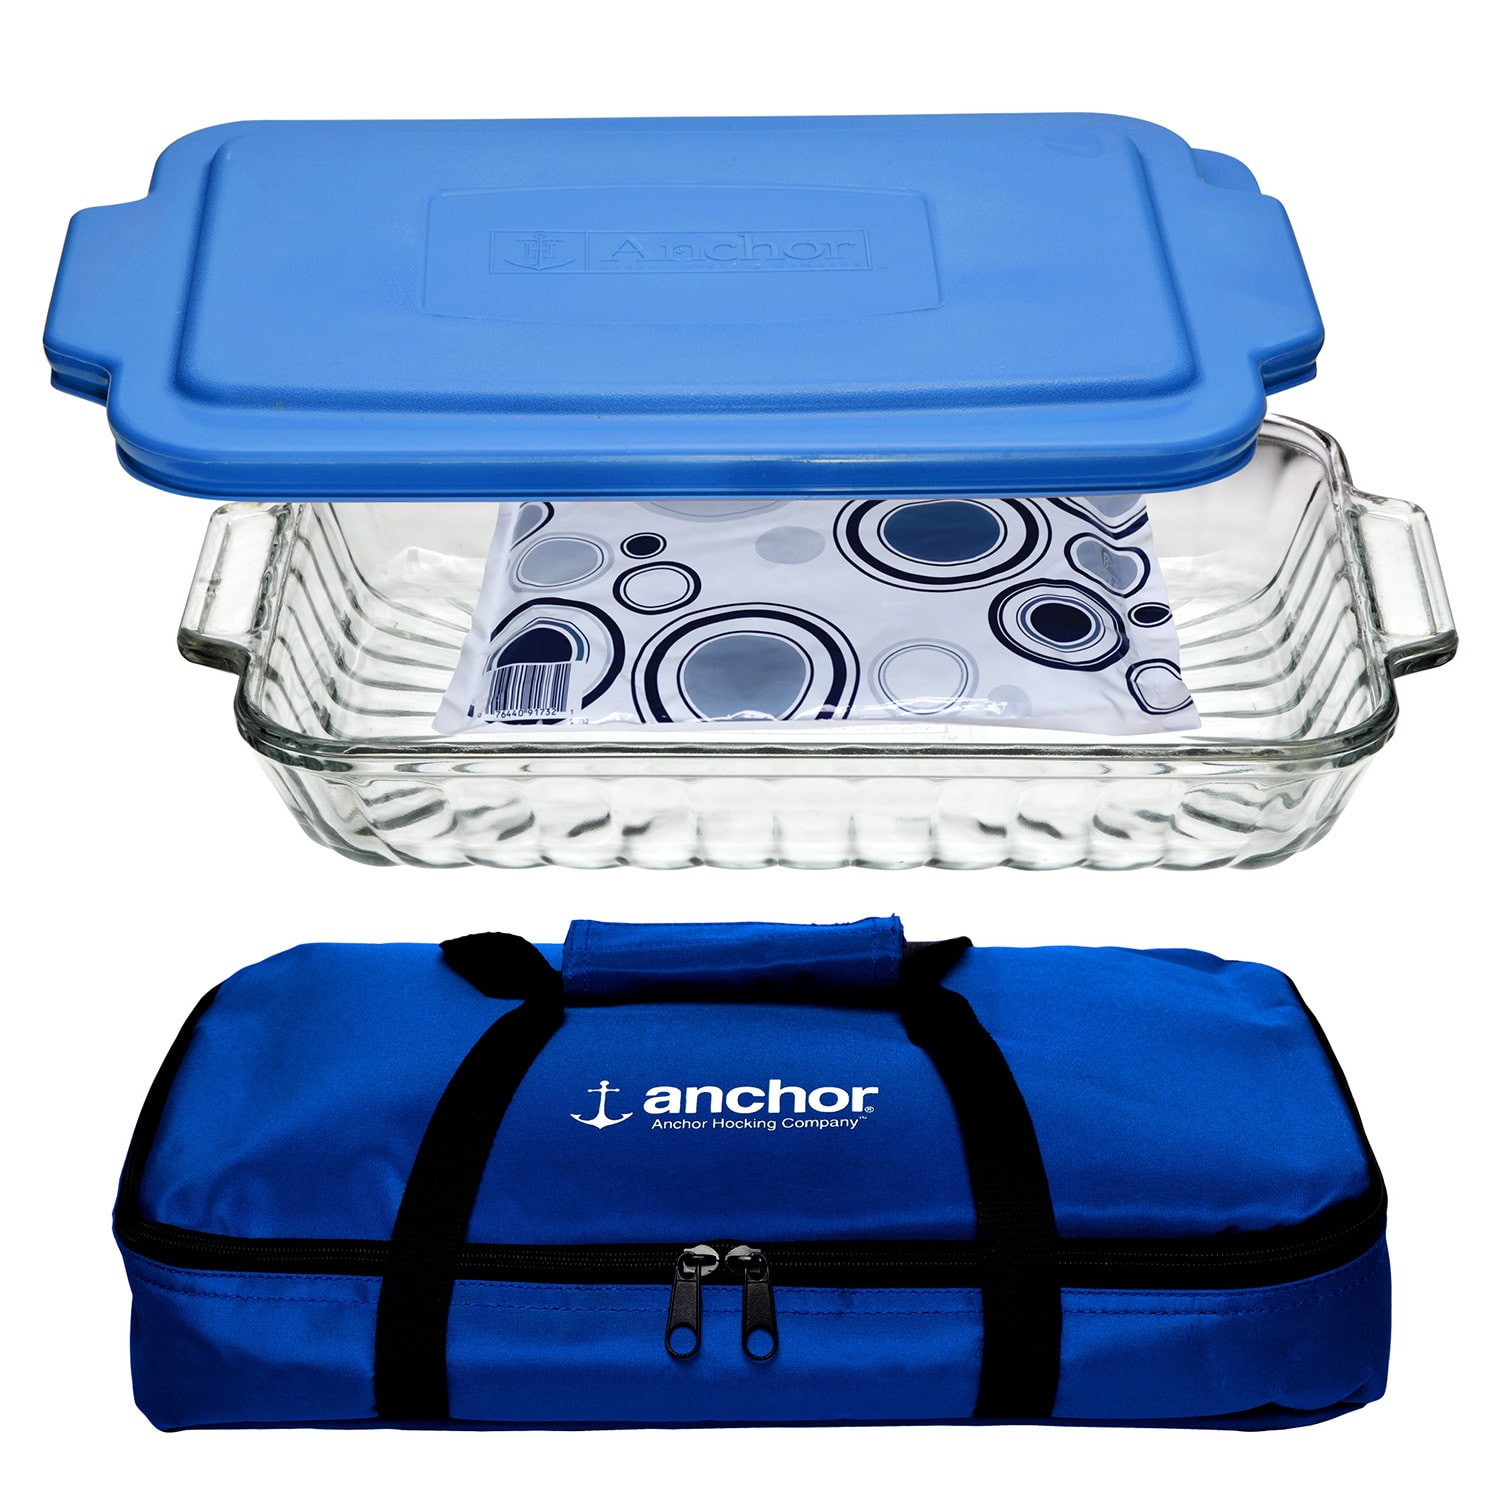 Anchor Hocking 3-Piece Bakeware Set, Clear